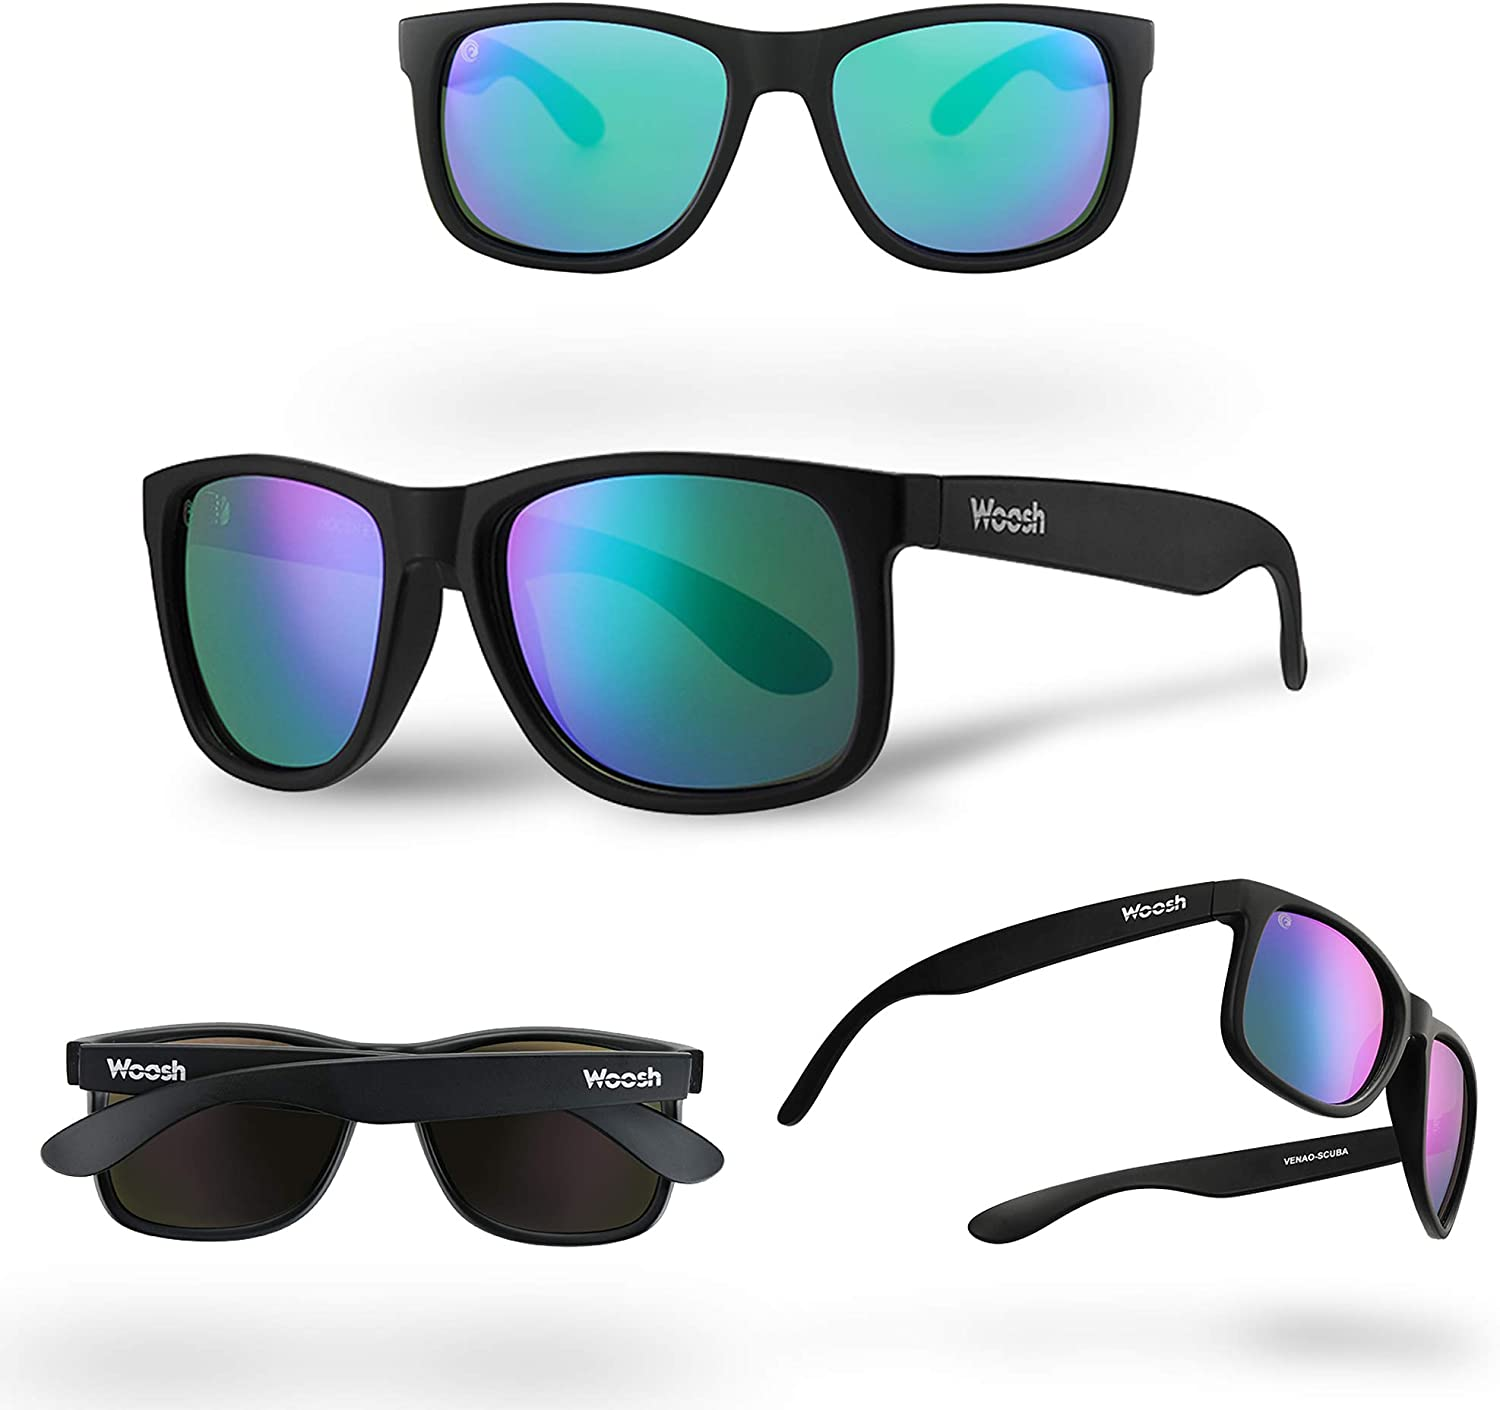 Polarized Sunglasses for Men and Women Color Mirror Lens Light Weight UV Protected Stylish